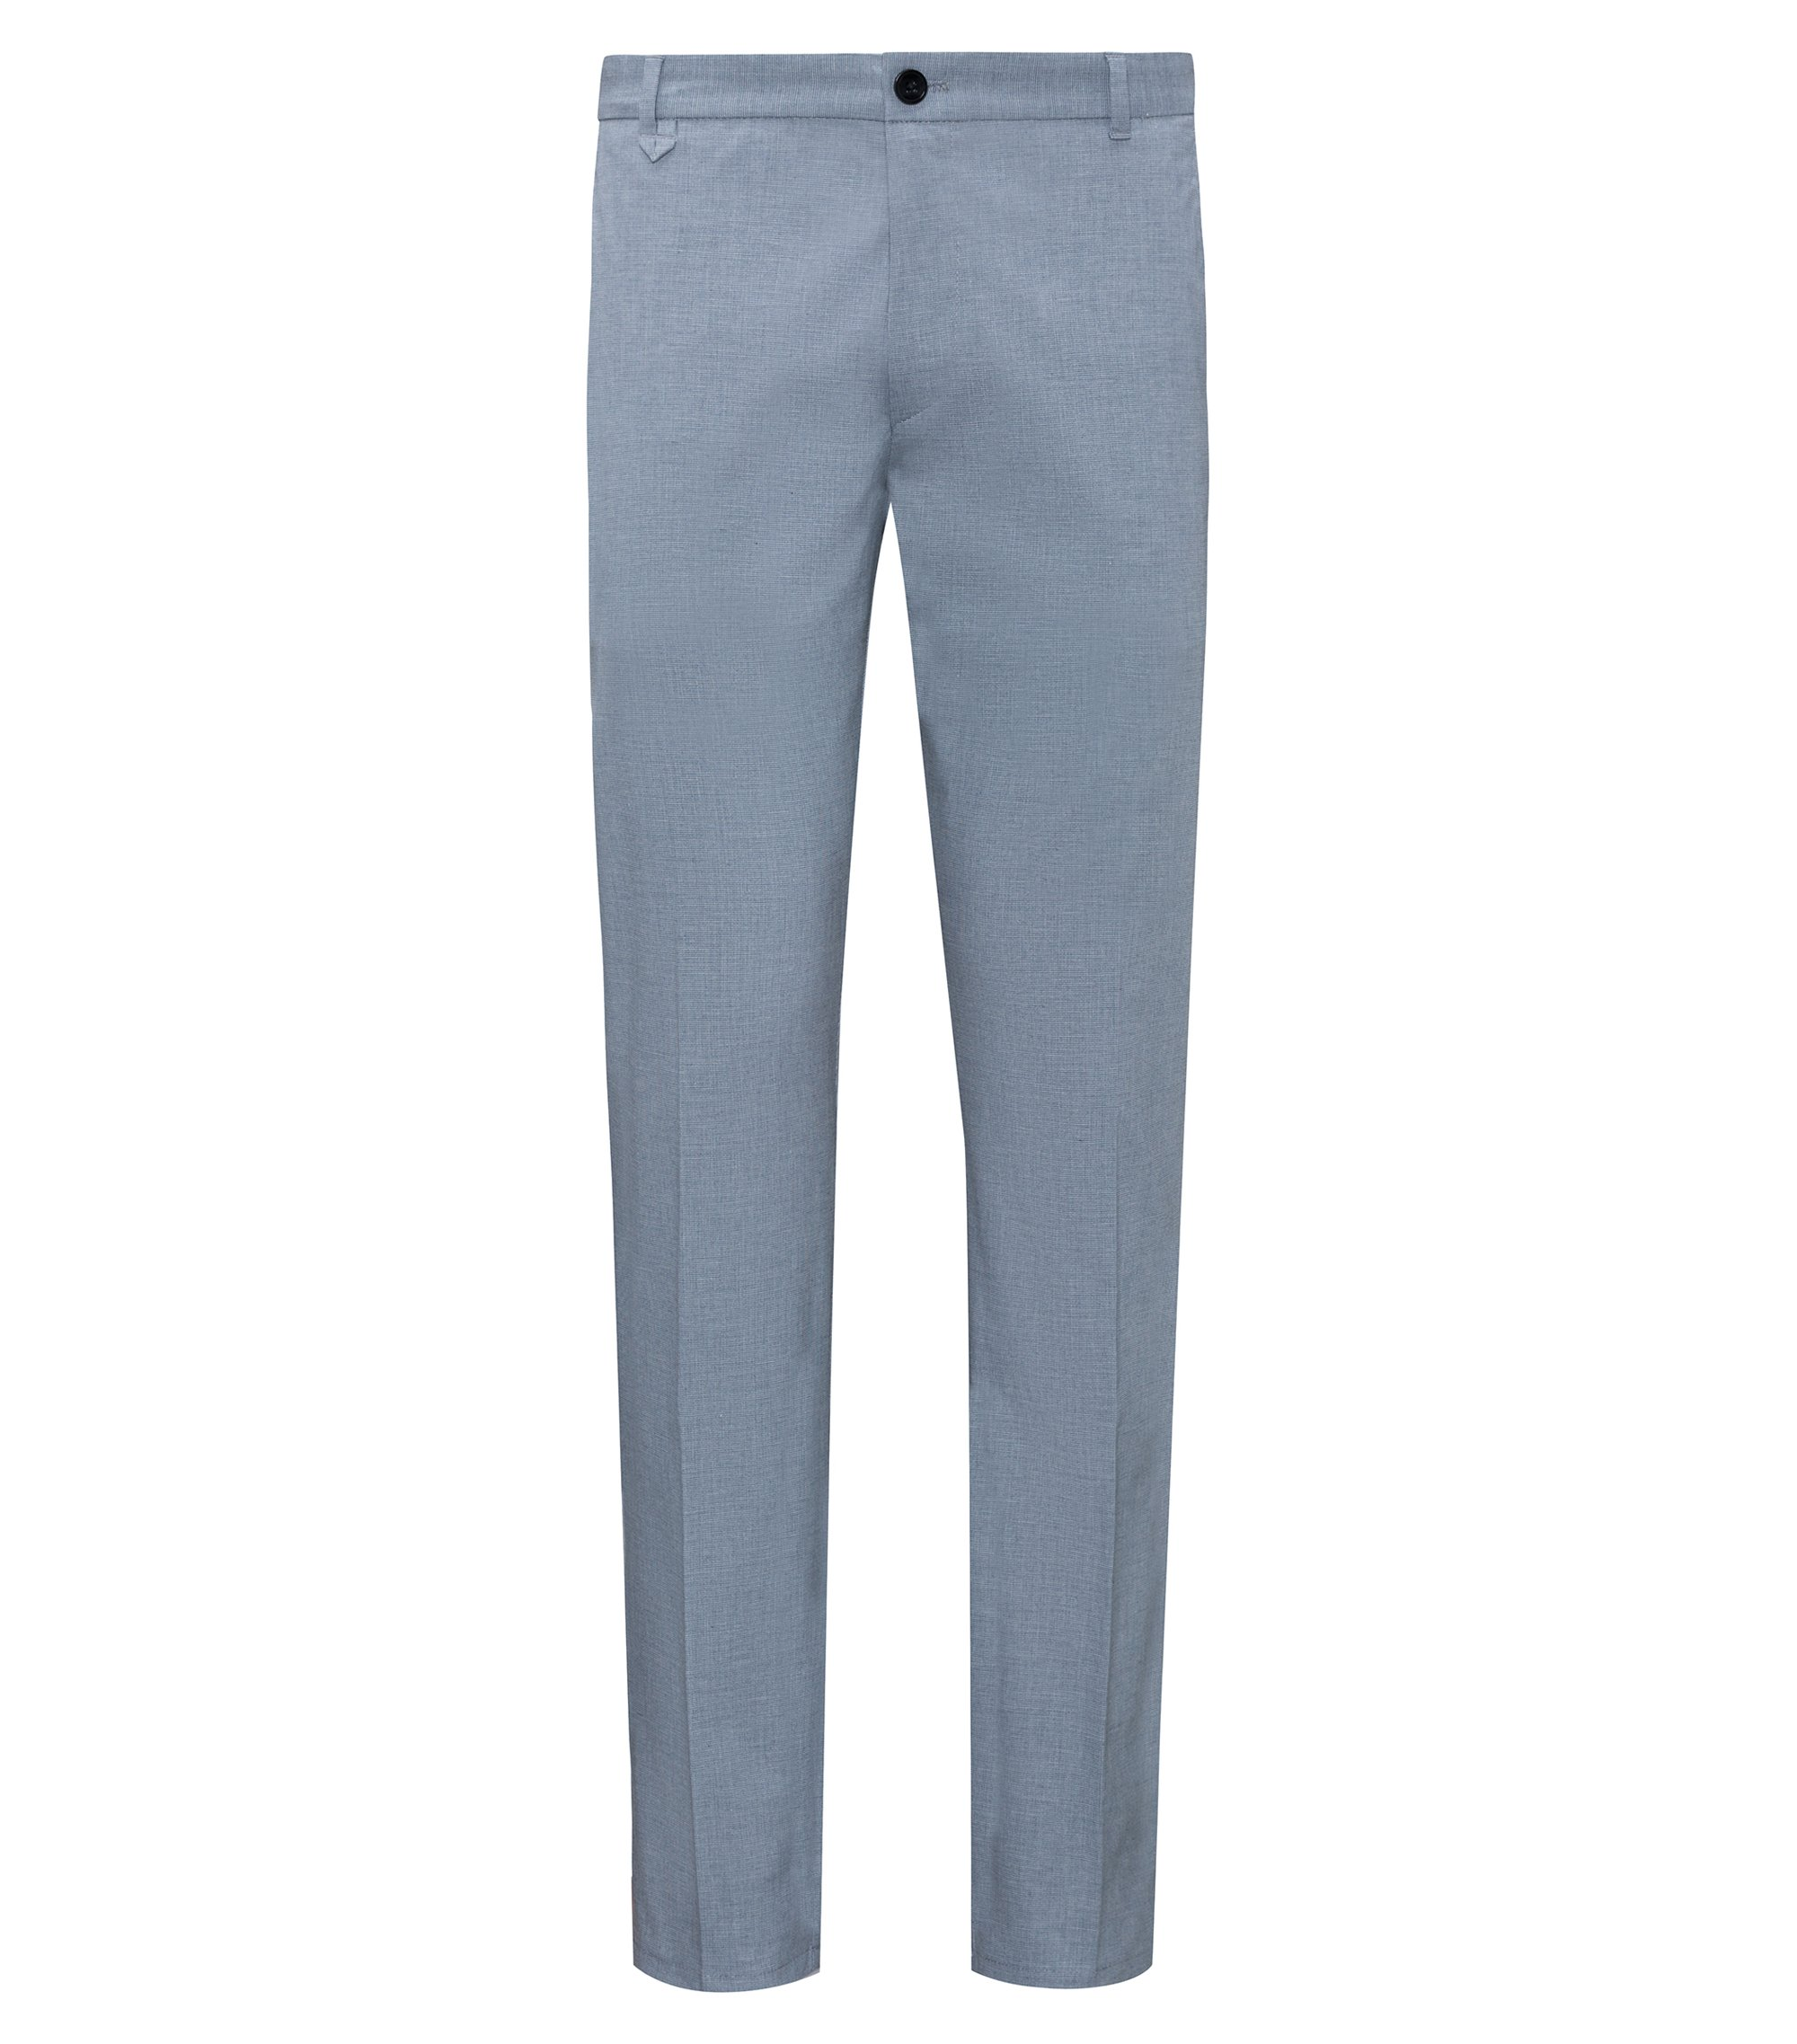 Pantalon Extra Slim Fit en coton stretch micro-structuré, Turquoise